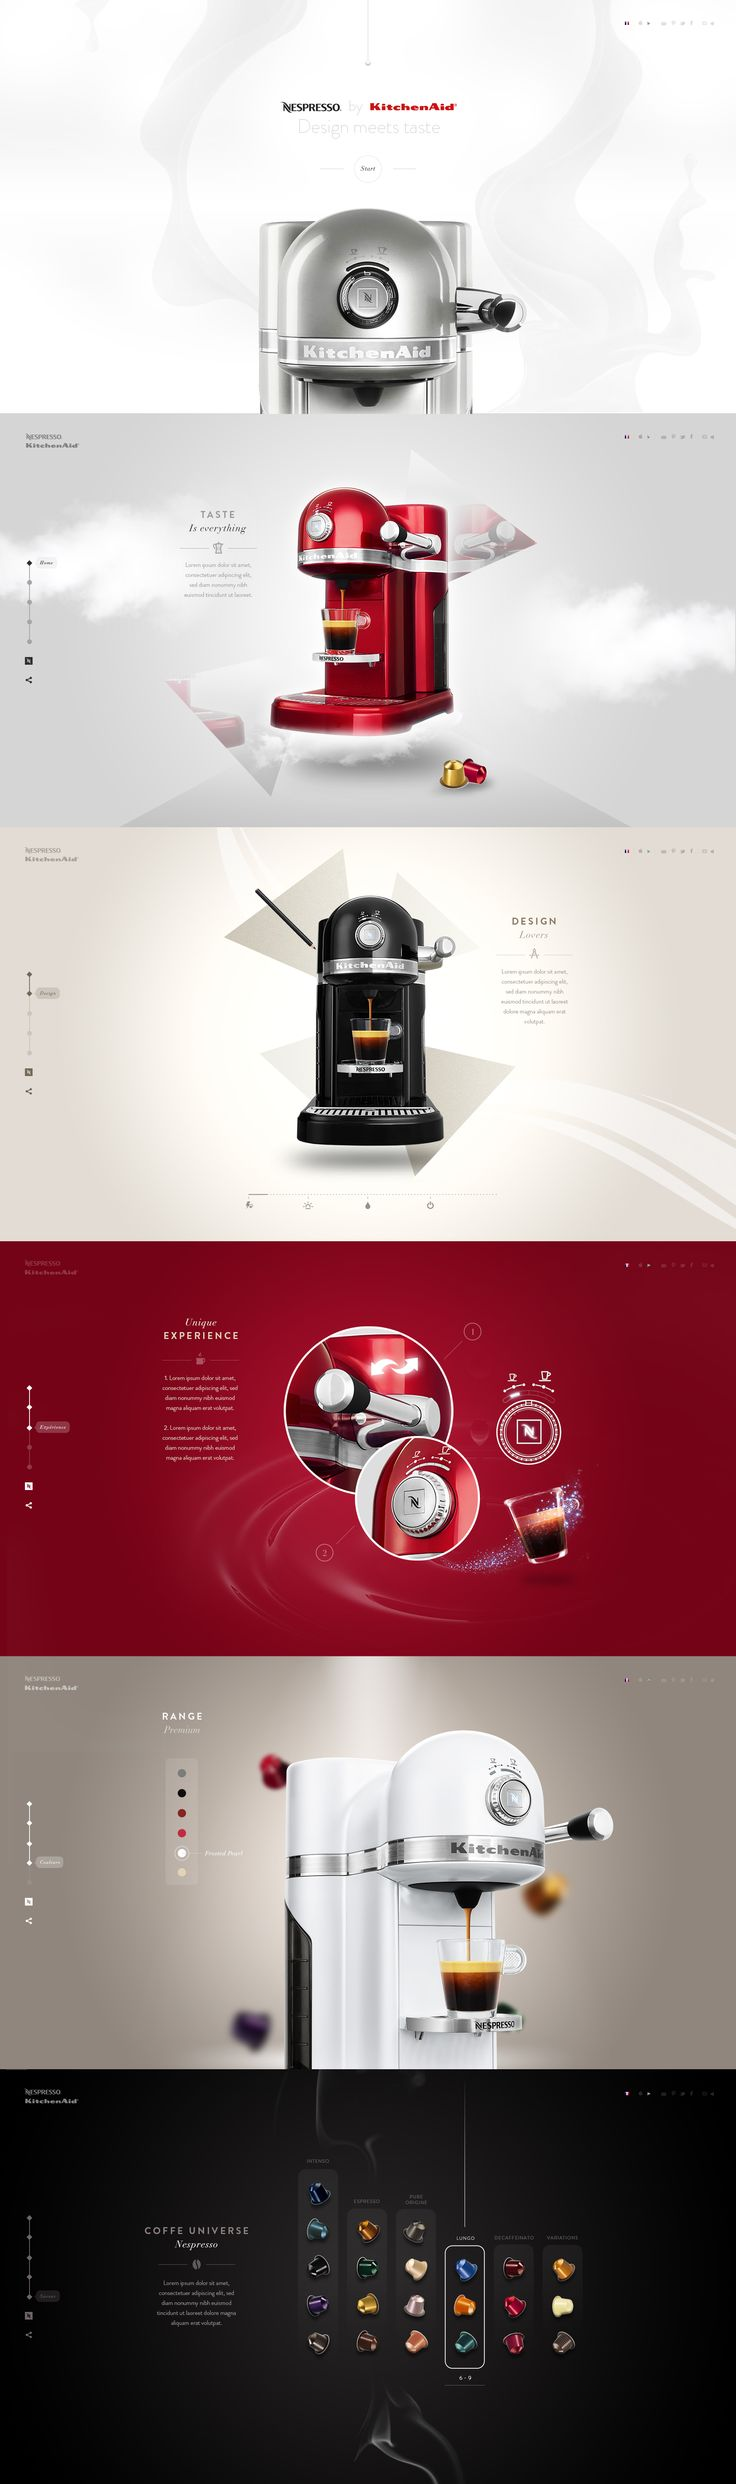 Nespresso by Kitchenaid - Webdesign by Steve Fraschini - https://dribbble.com/shots/1923979-Nespresso-by-Kitchenaid-Website?list=users&offset=0